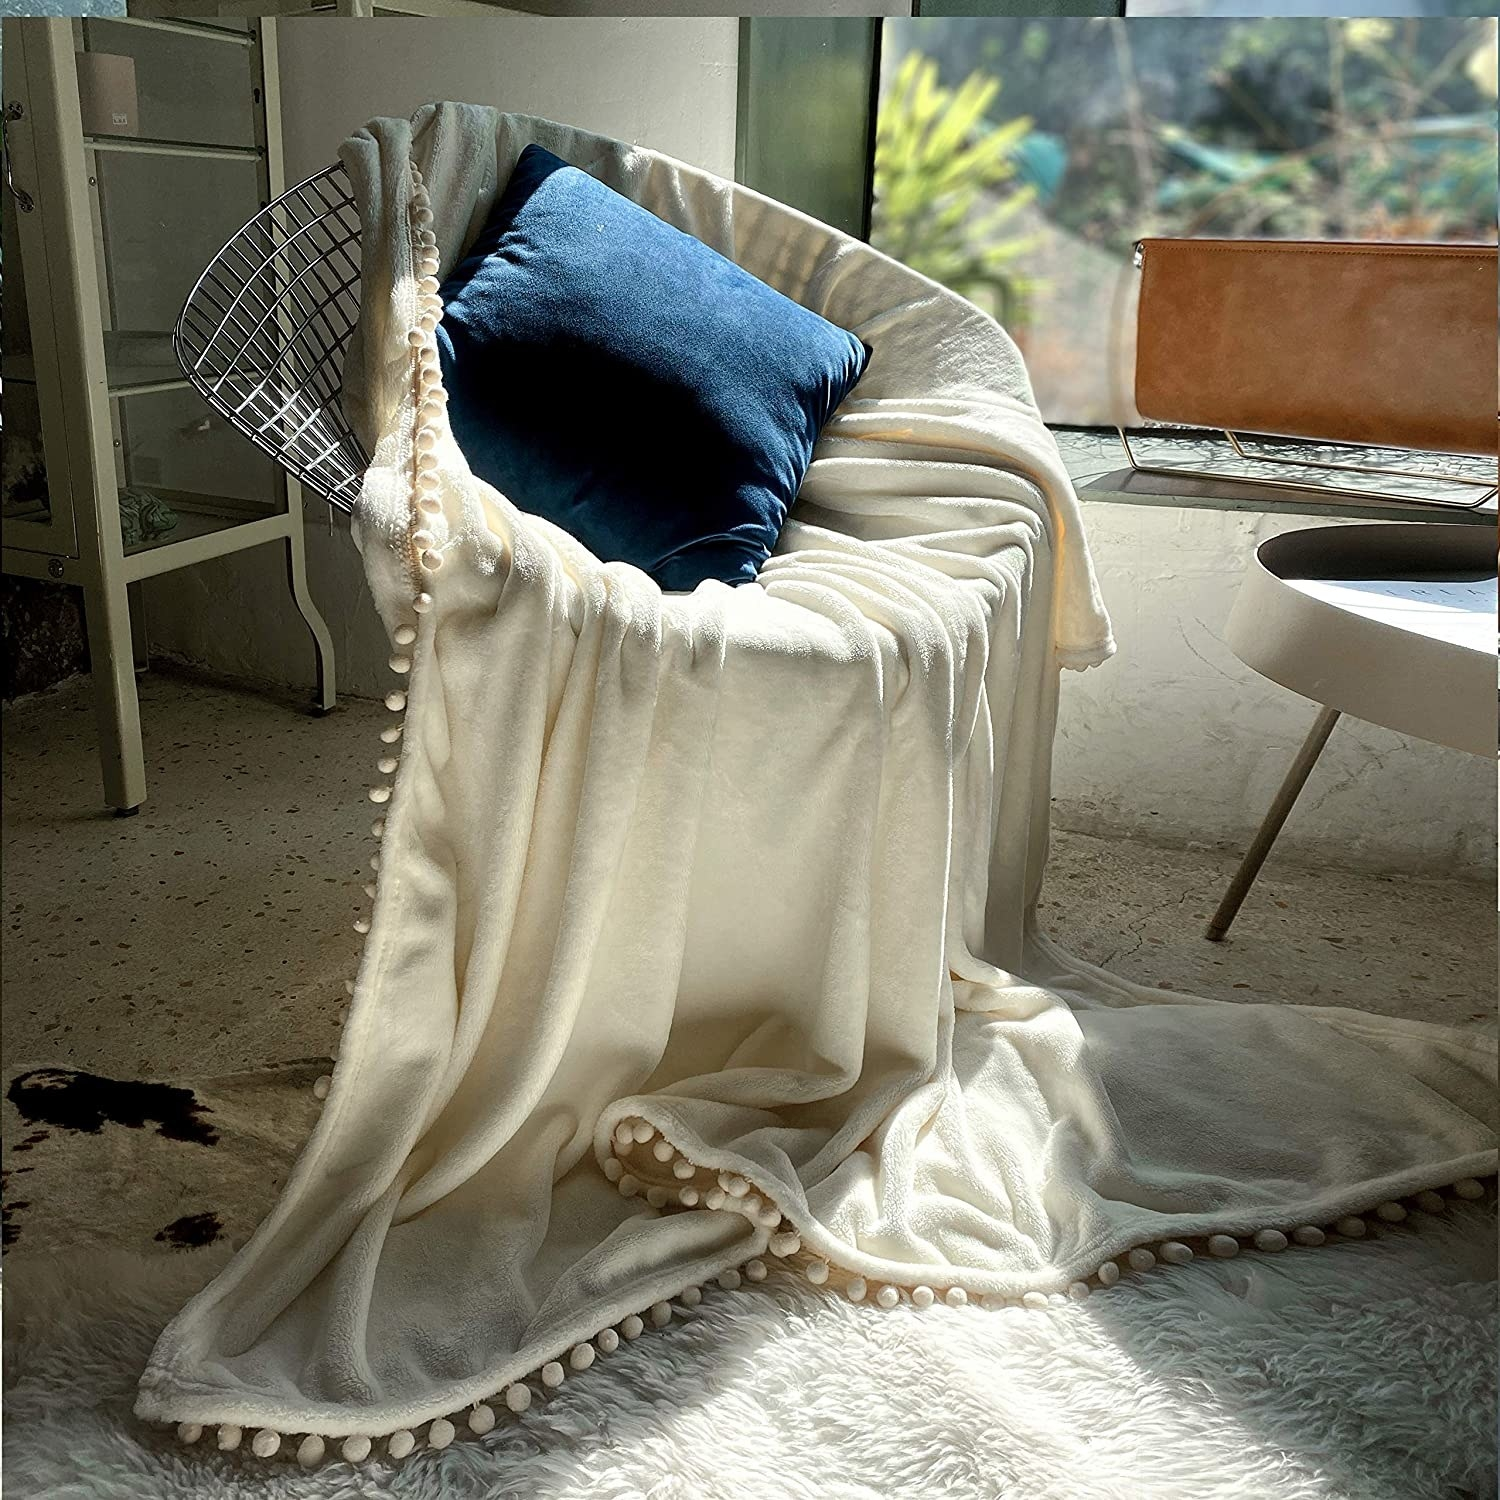 The blanket on a chair